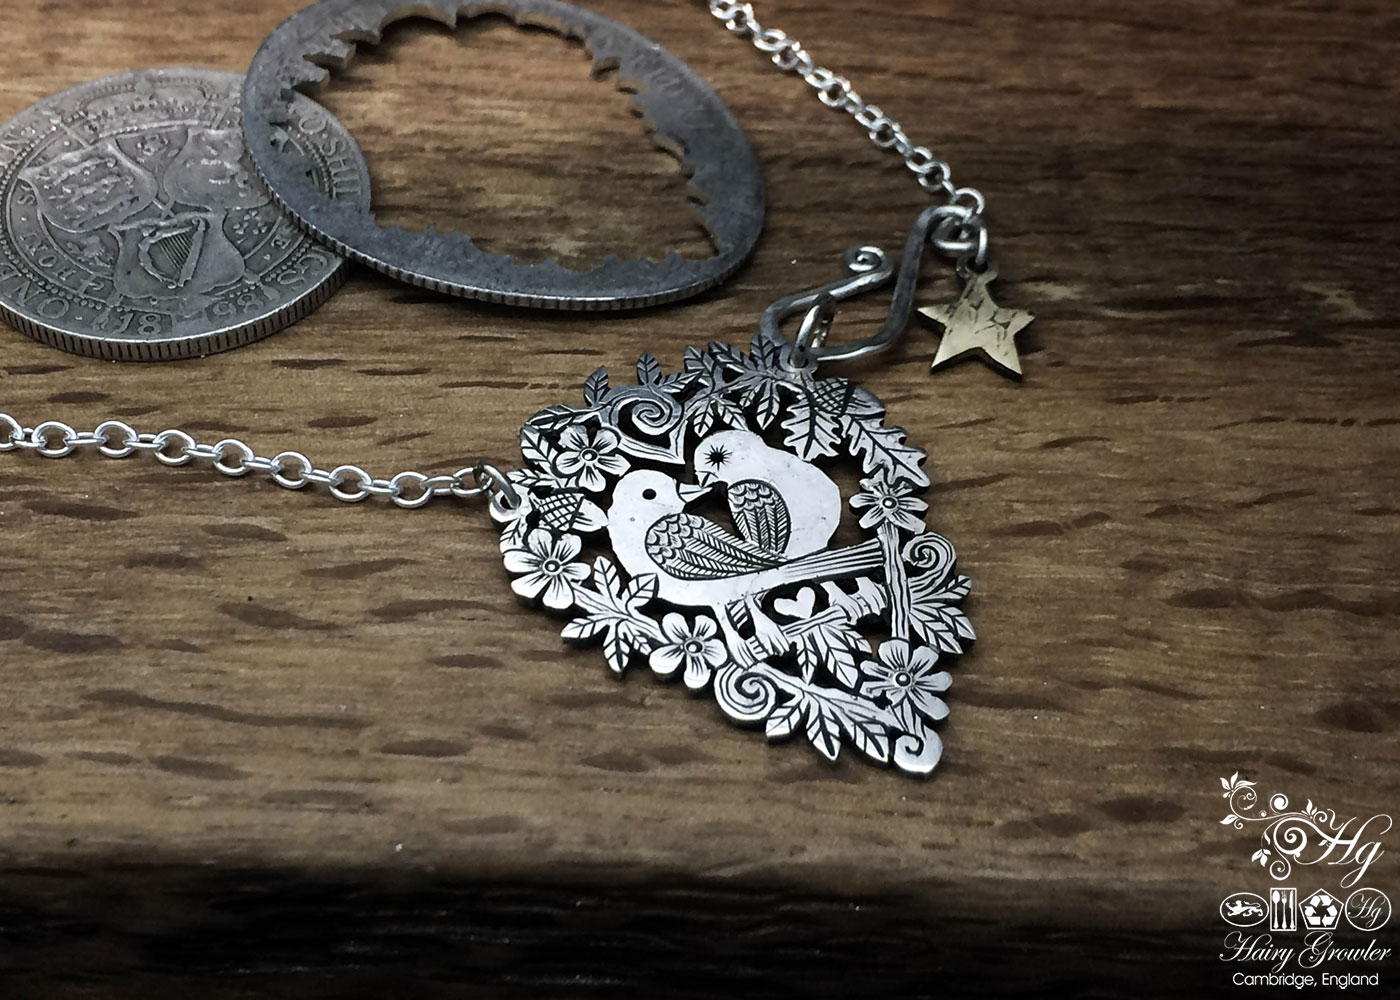 Handmade and upcycled sterling silver sweet lovebirds necklace